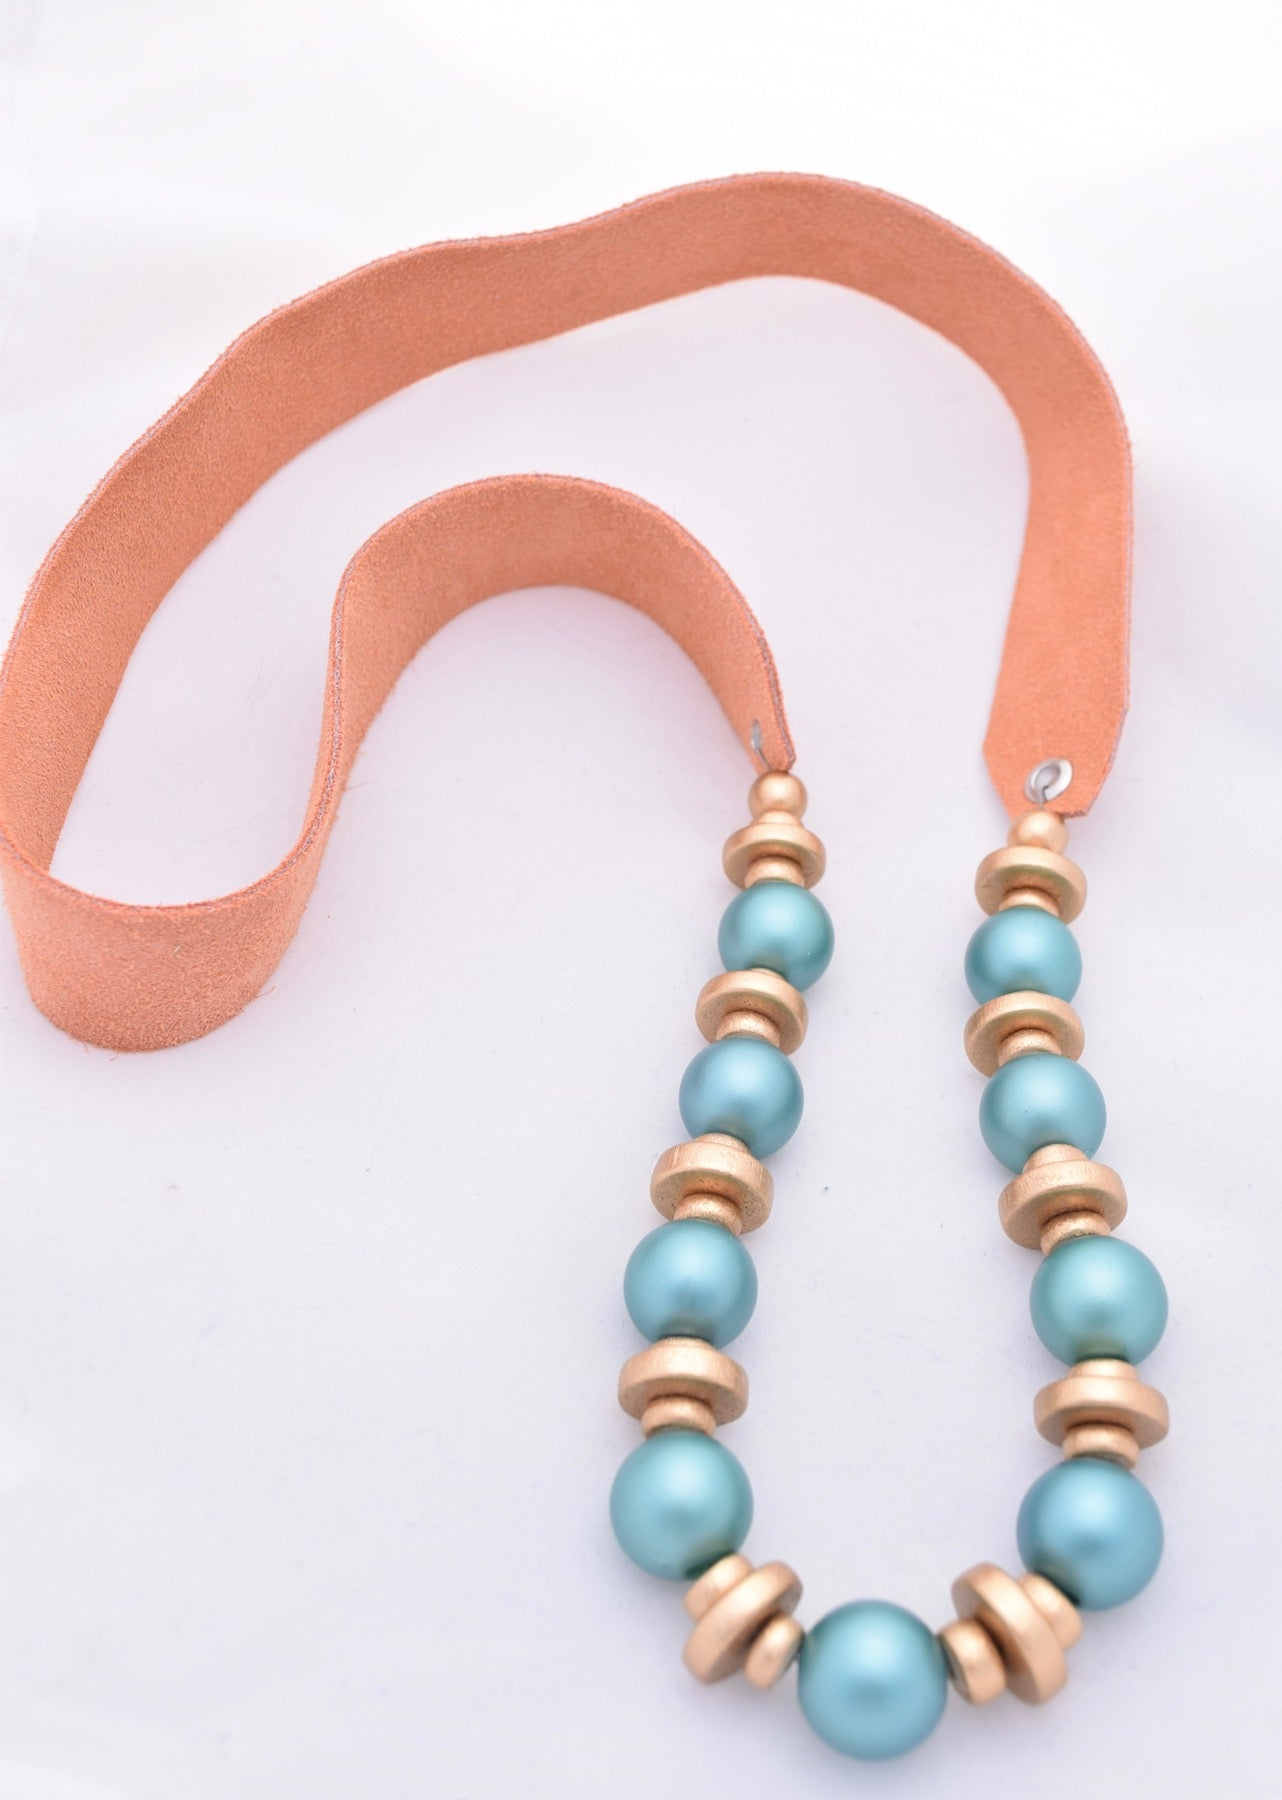 Turquoise Pearl and Gold Necklace on Peach Leather Strap, Summer